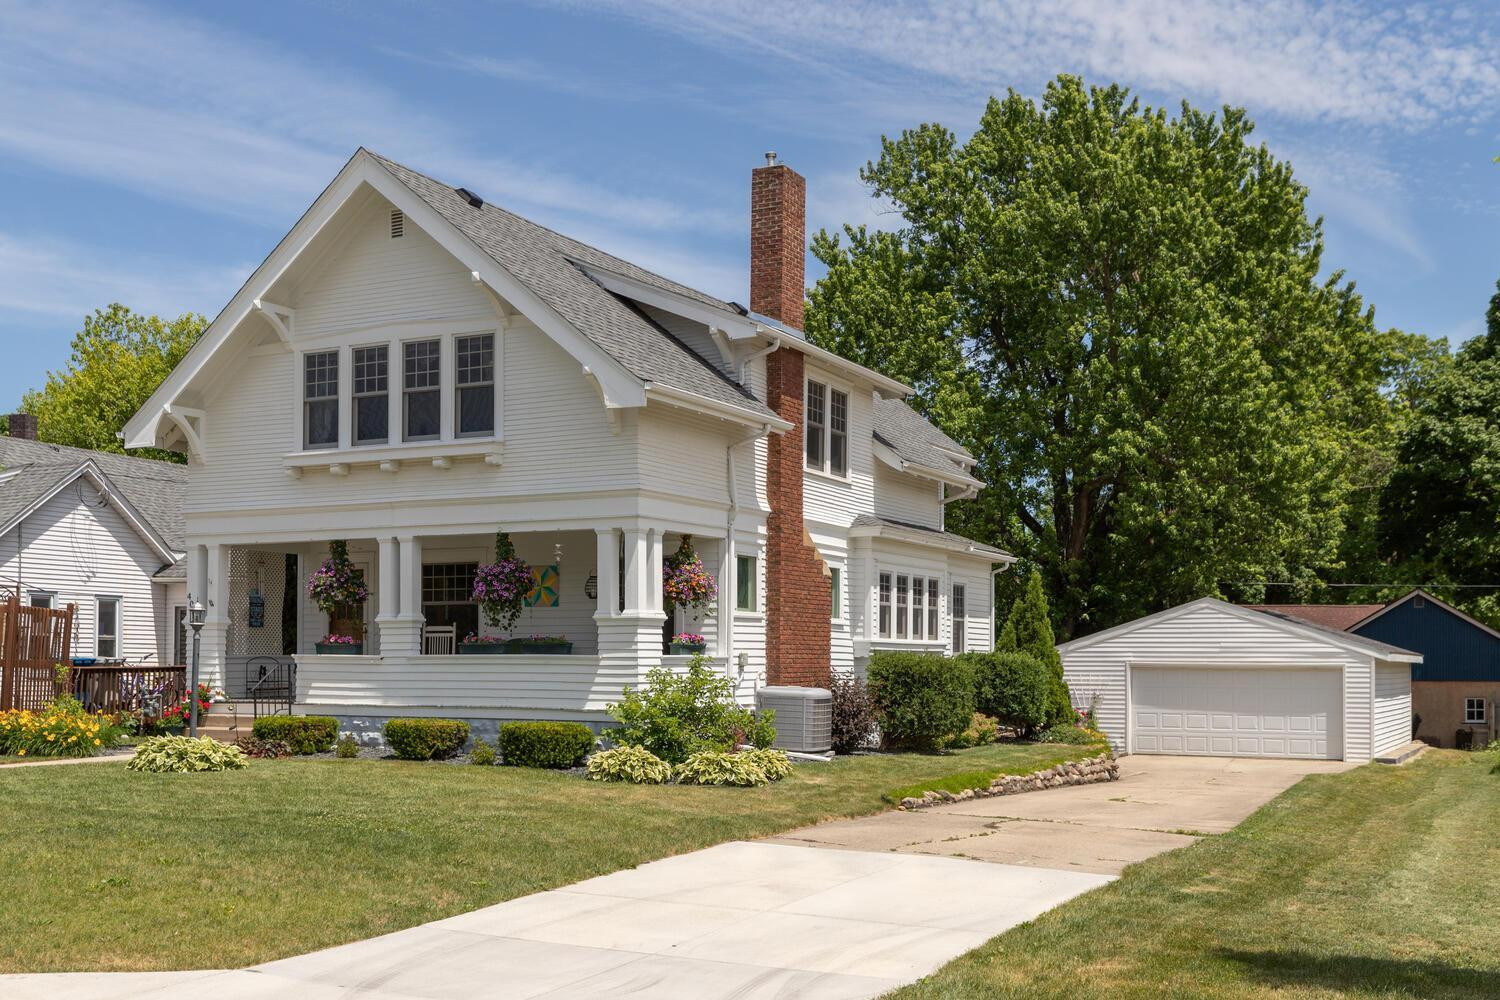 1914 Original Charmer full of Character Inside and Out! Walking distance to the Aquatic Park or downtown Kasson.